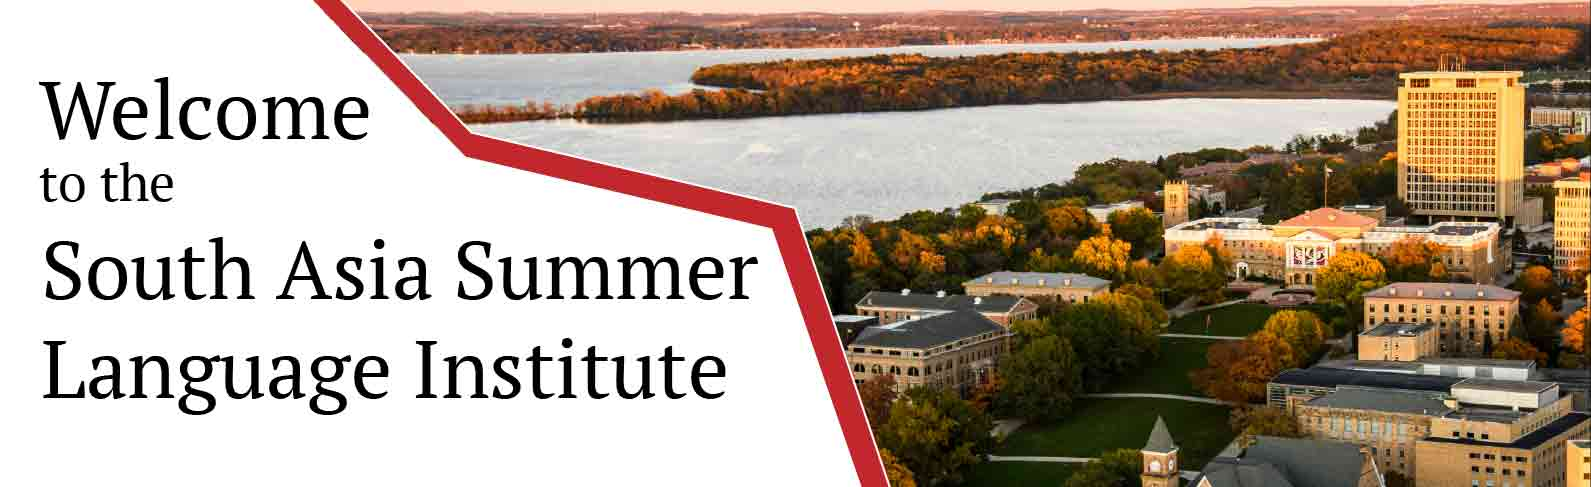 Welcome to the South Asia Summer Language Institute